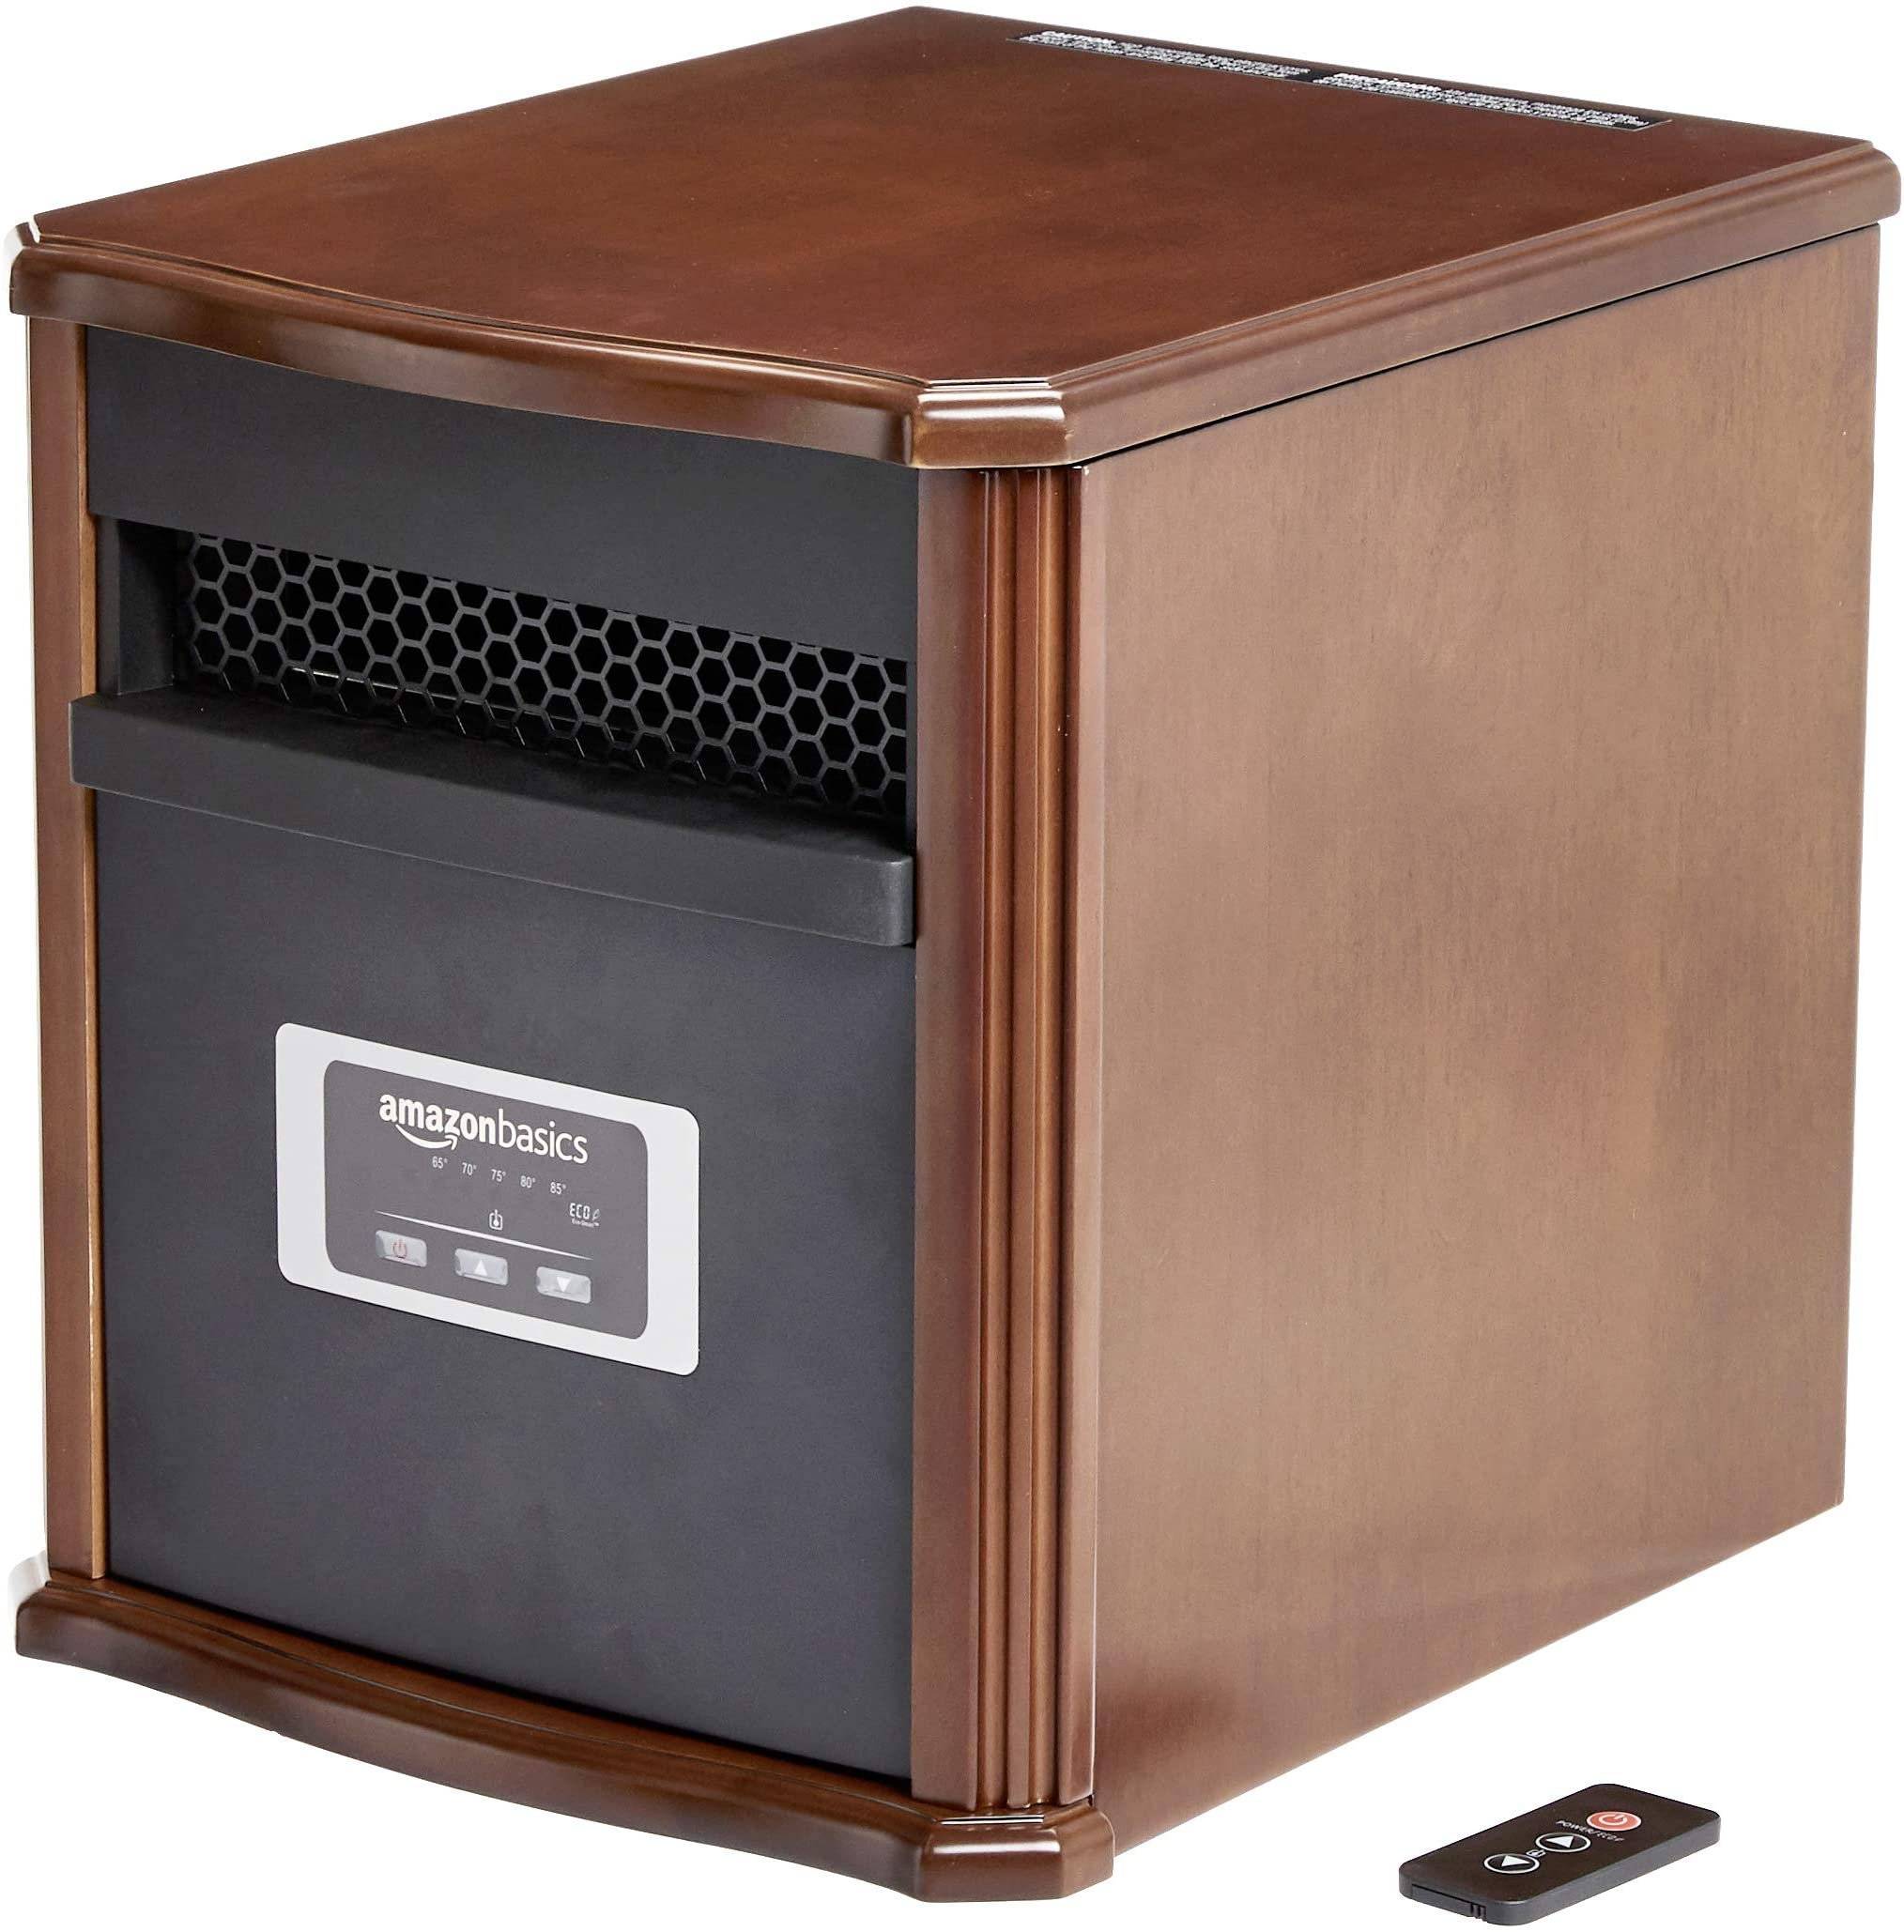 Amazon Basics Portable Eco-Smart Space Heater - Wood